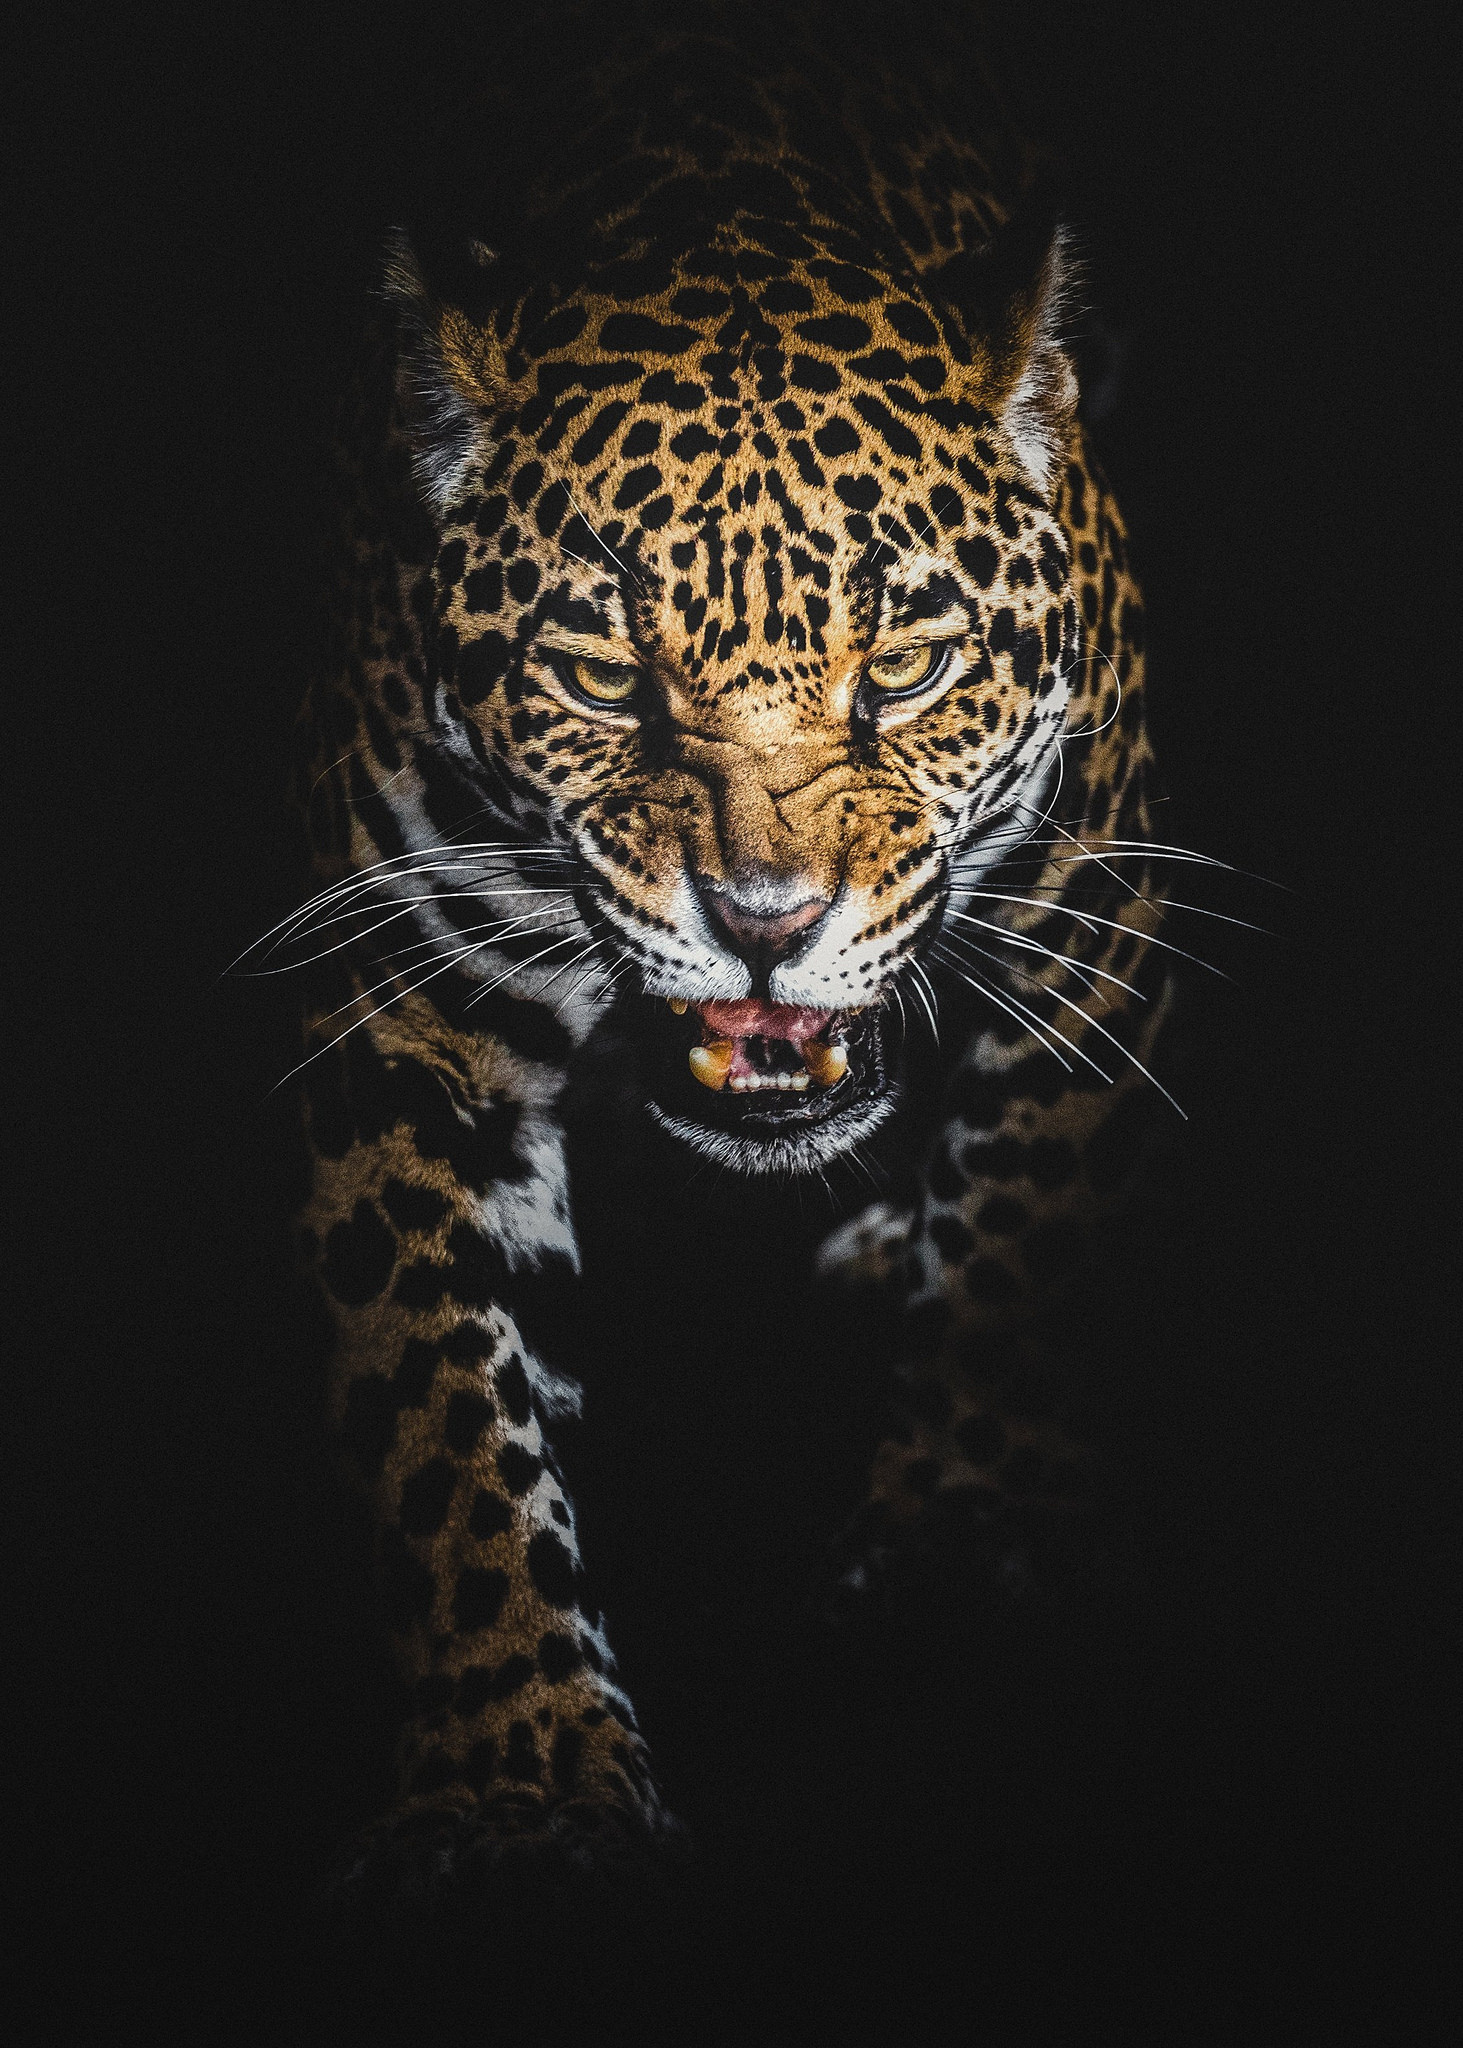 Black leopard background 58 images - Jaguar animal hd wallpapers ...